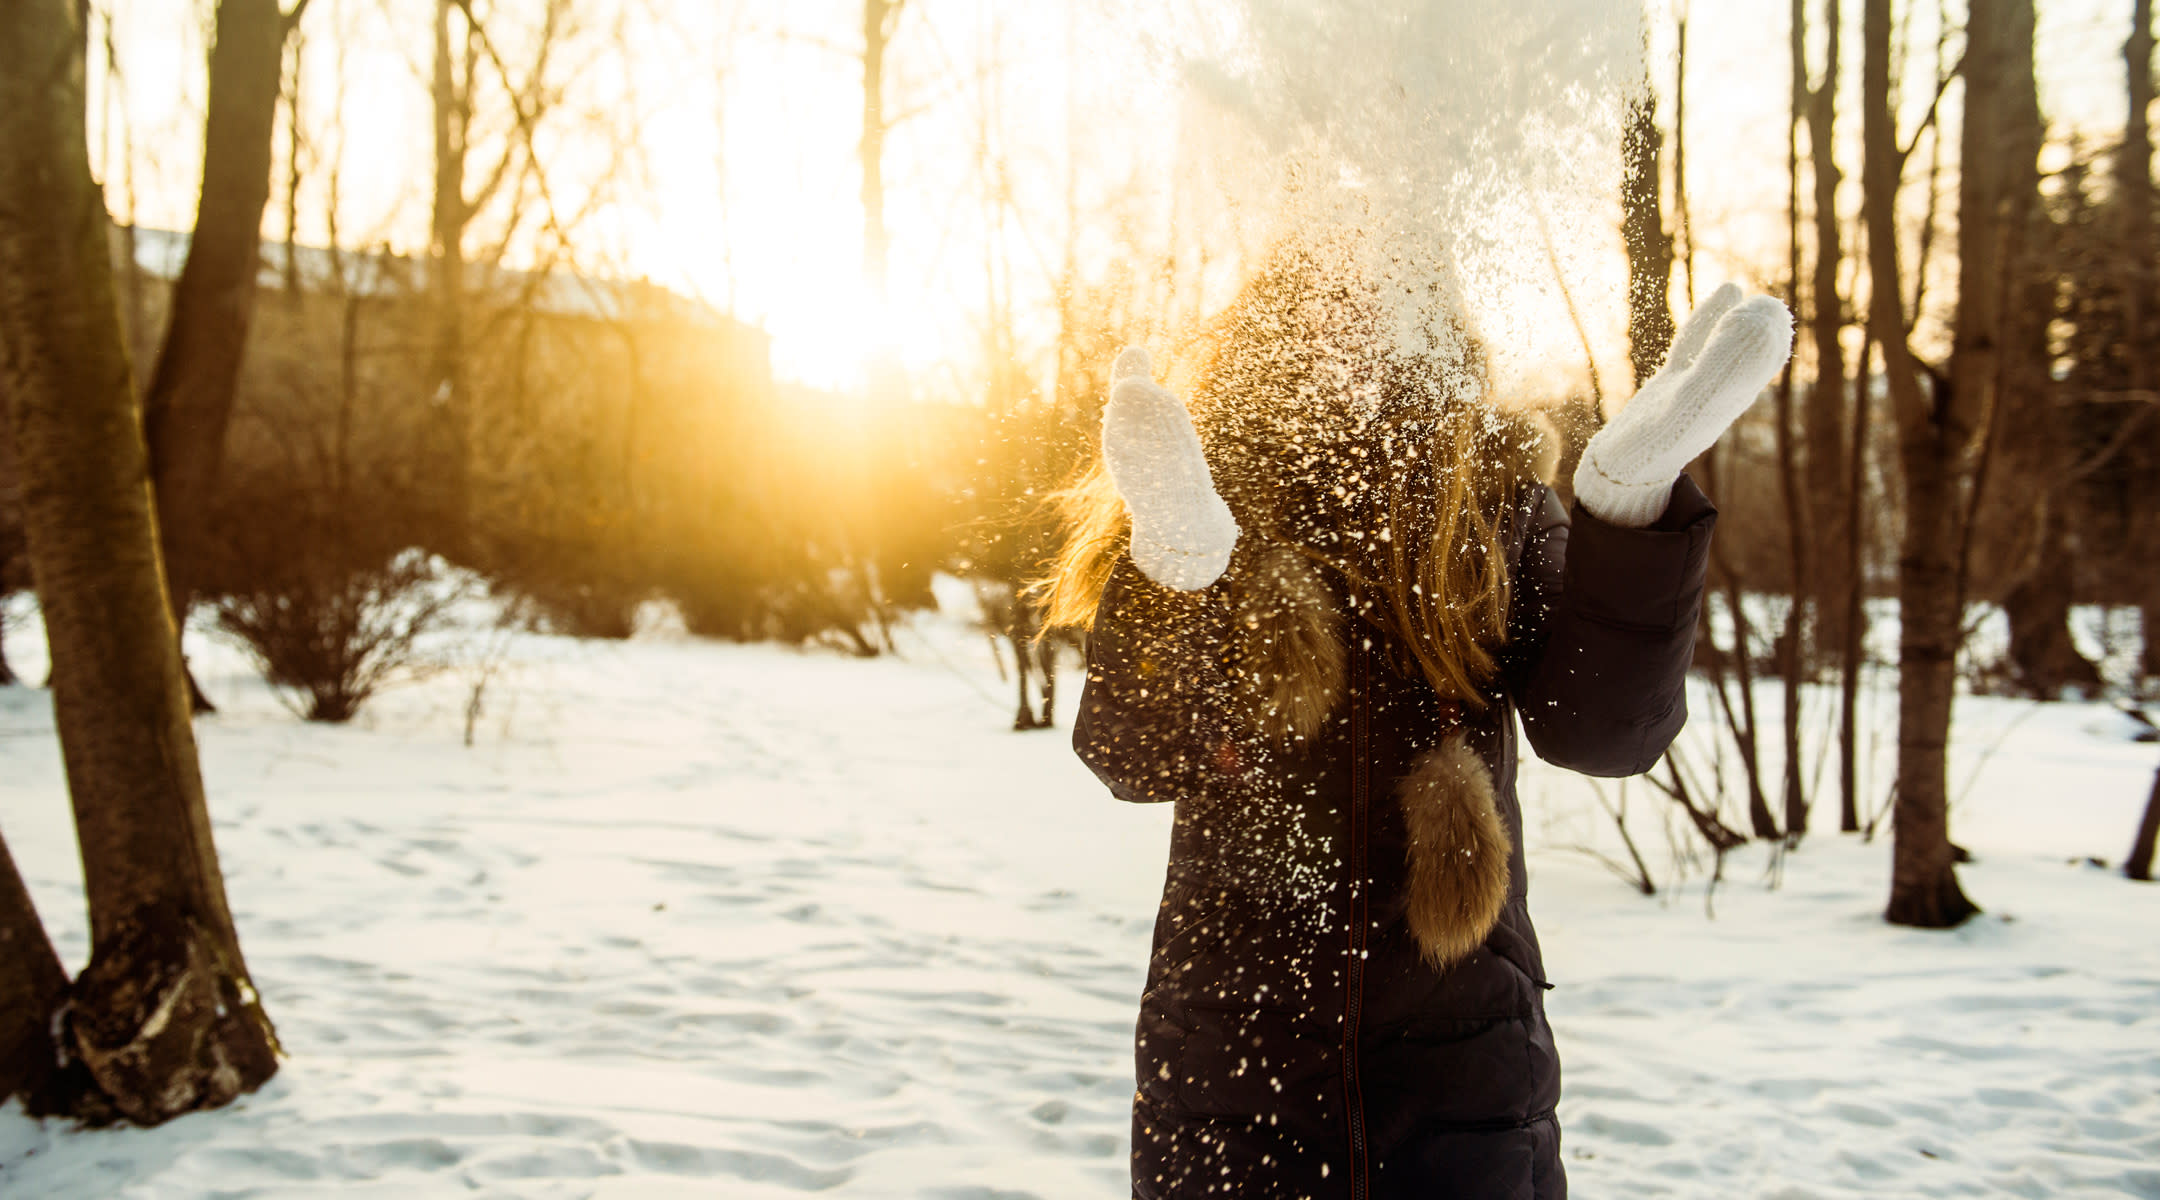 Woman throwing snowball into the air with snowy trees in the background.